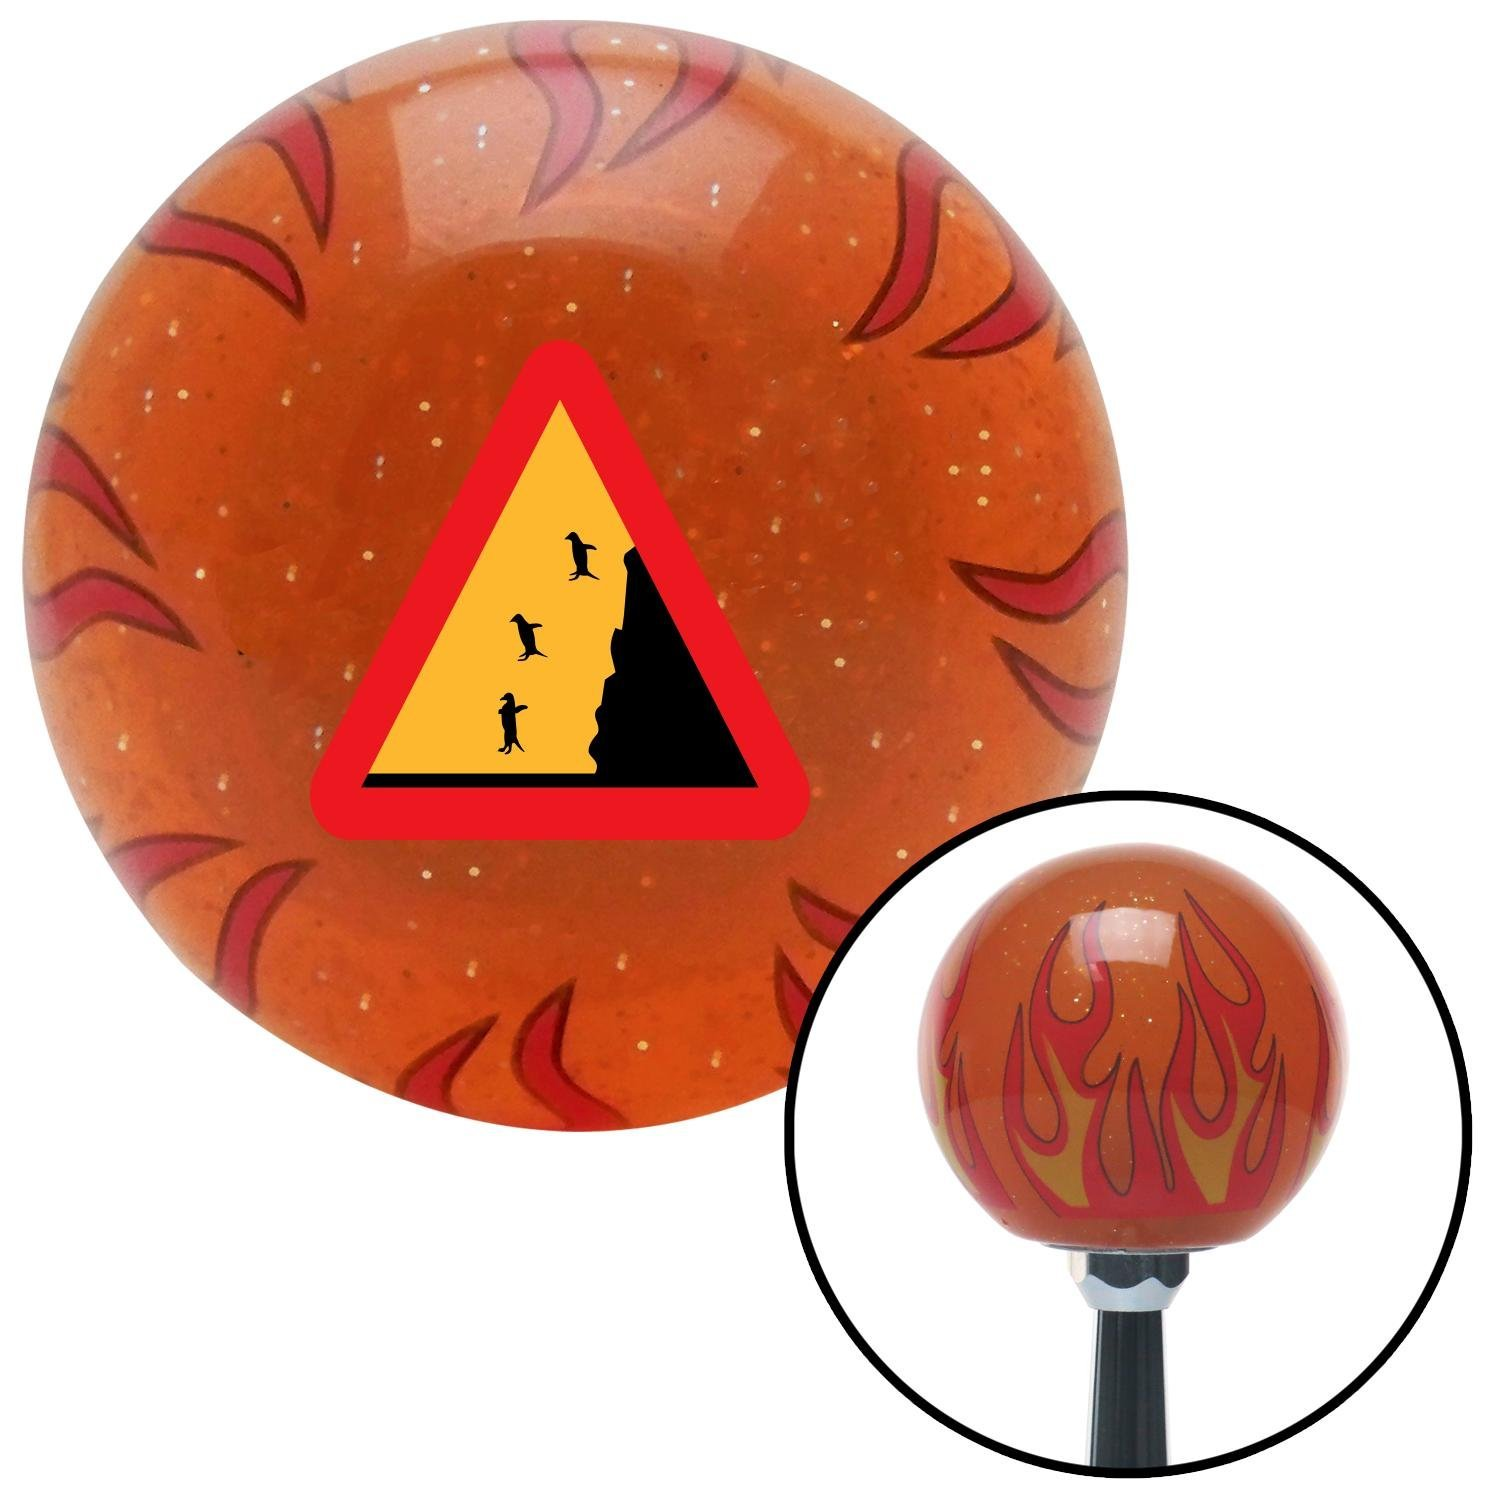 American Shifter 260135 Orange Flame Metal Flake Shift Knob with M16 x 1.5 Insert Penguins Crossing